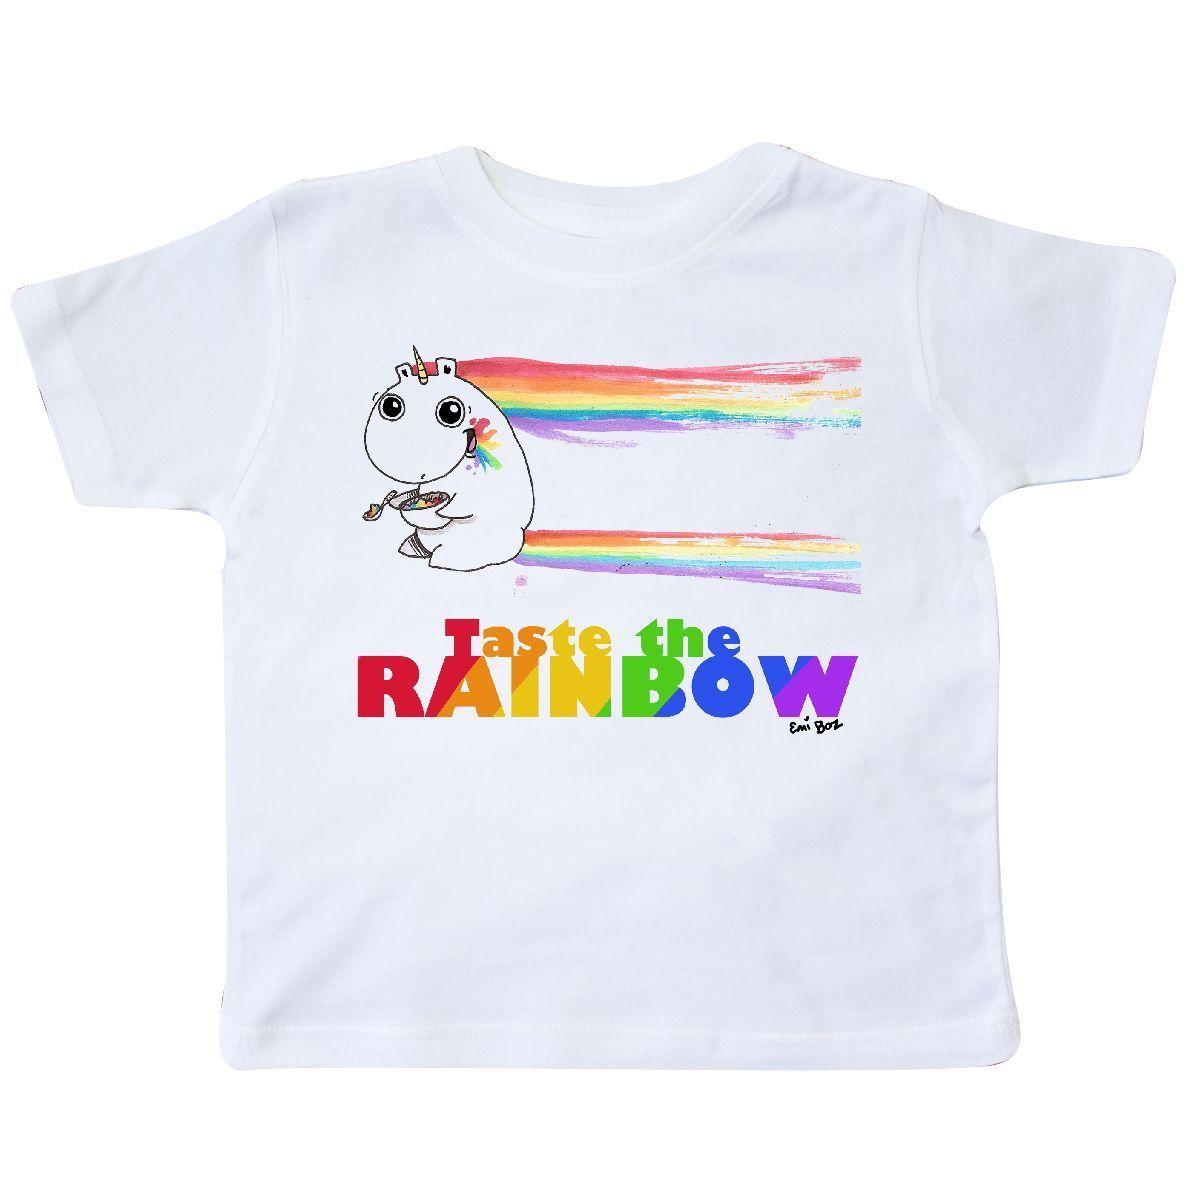 af91e8d226fe5f Inktastic Taste The Rainbow Unicorn Toddler T Shirt T Shirt Skittles Candy  Emi Funny Unisex Casual Tee Gift One Day T Shirt Best Site For T Shirts  From ...